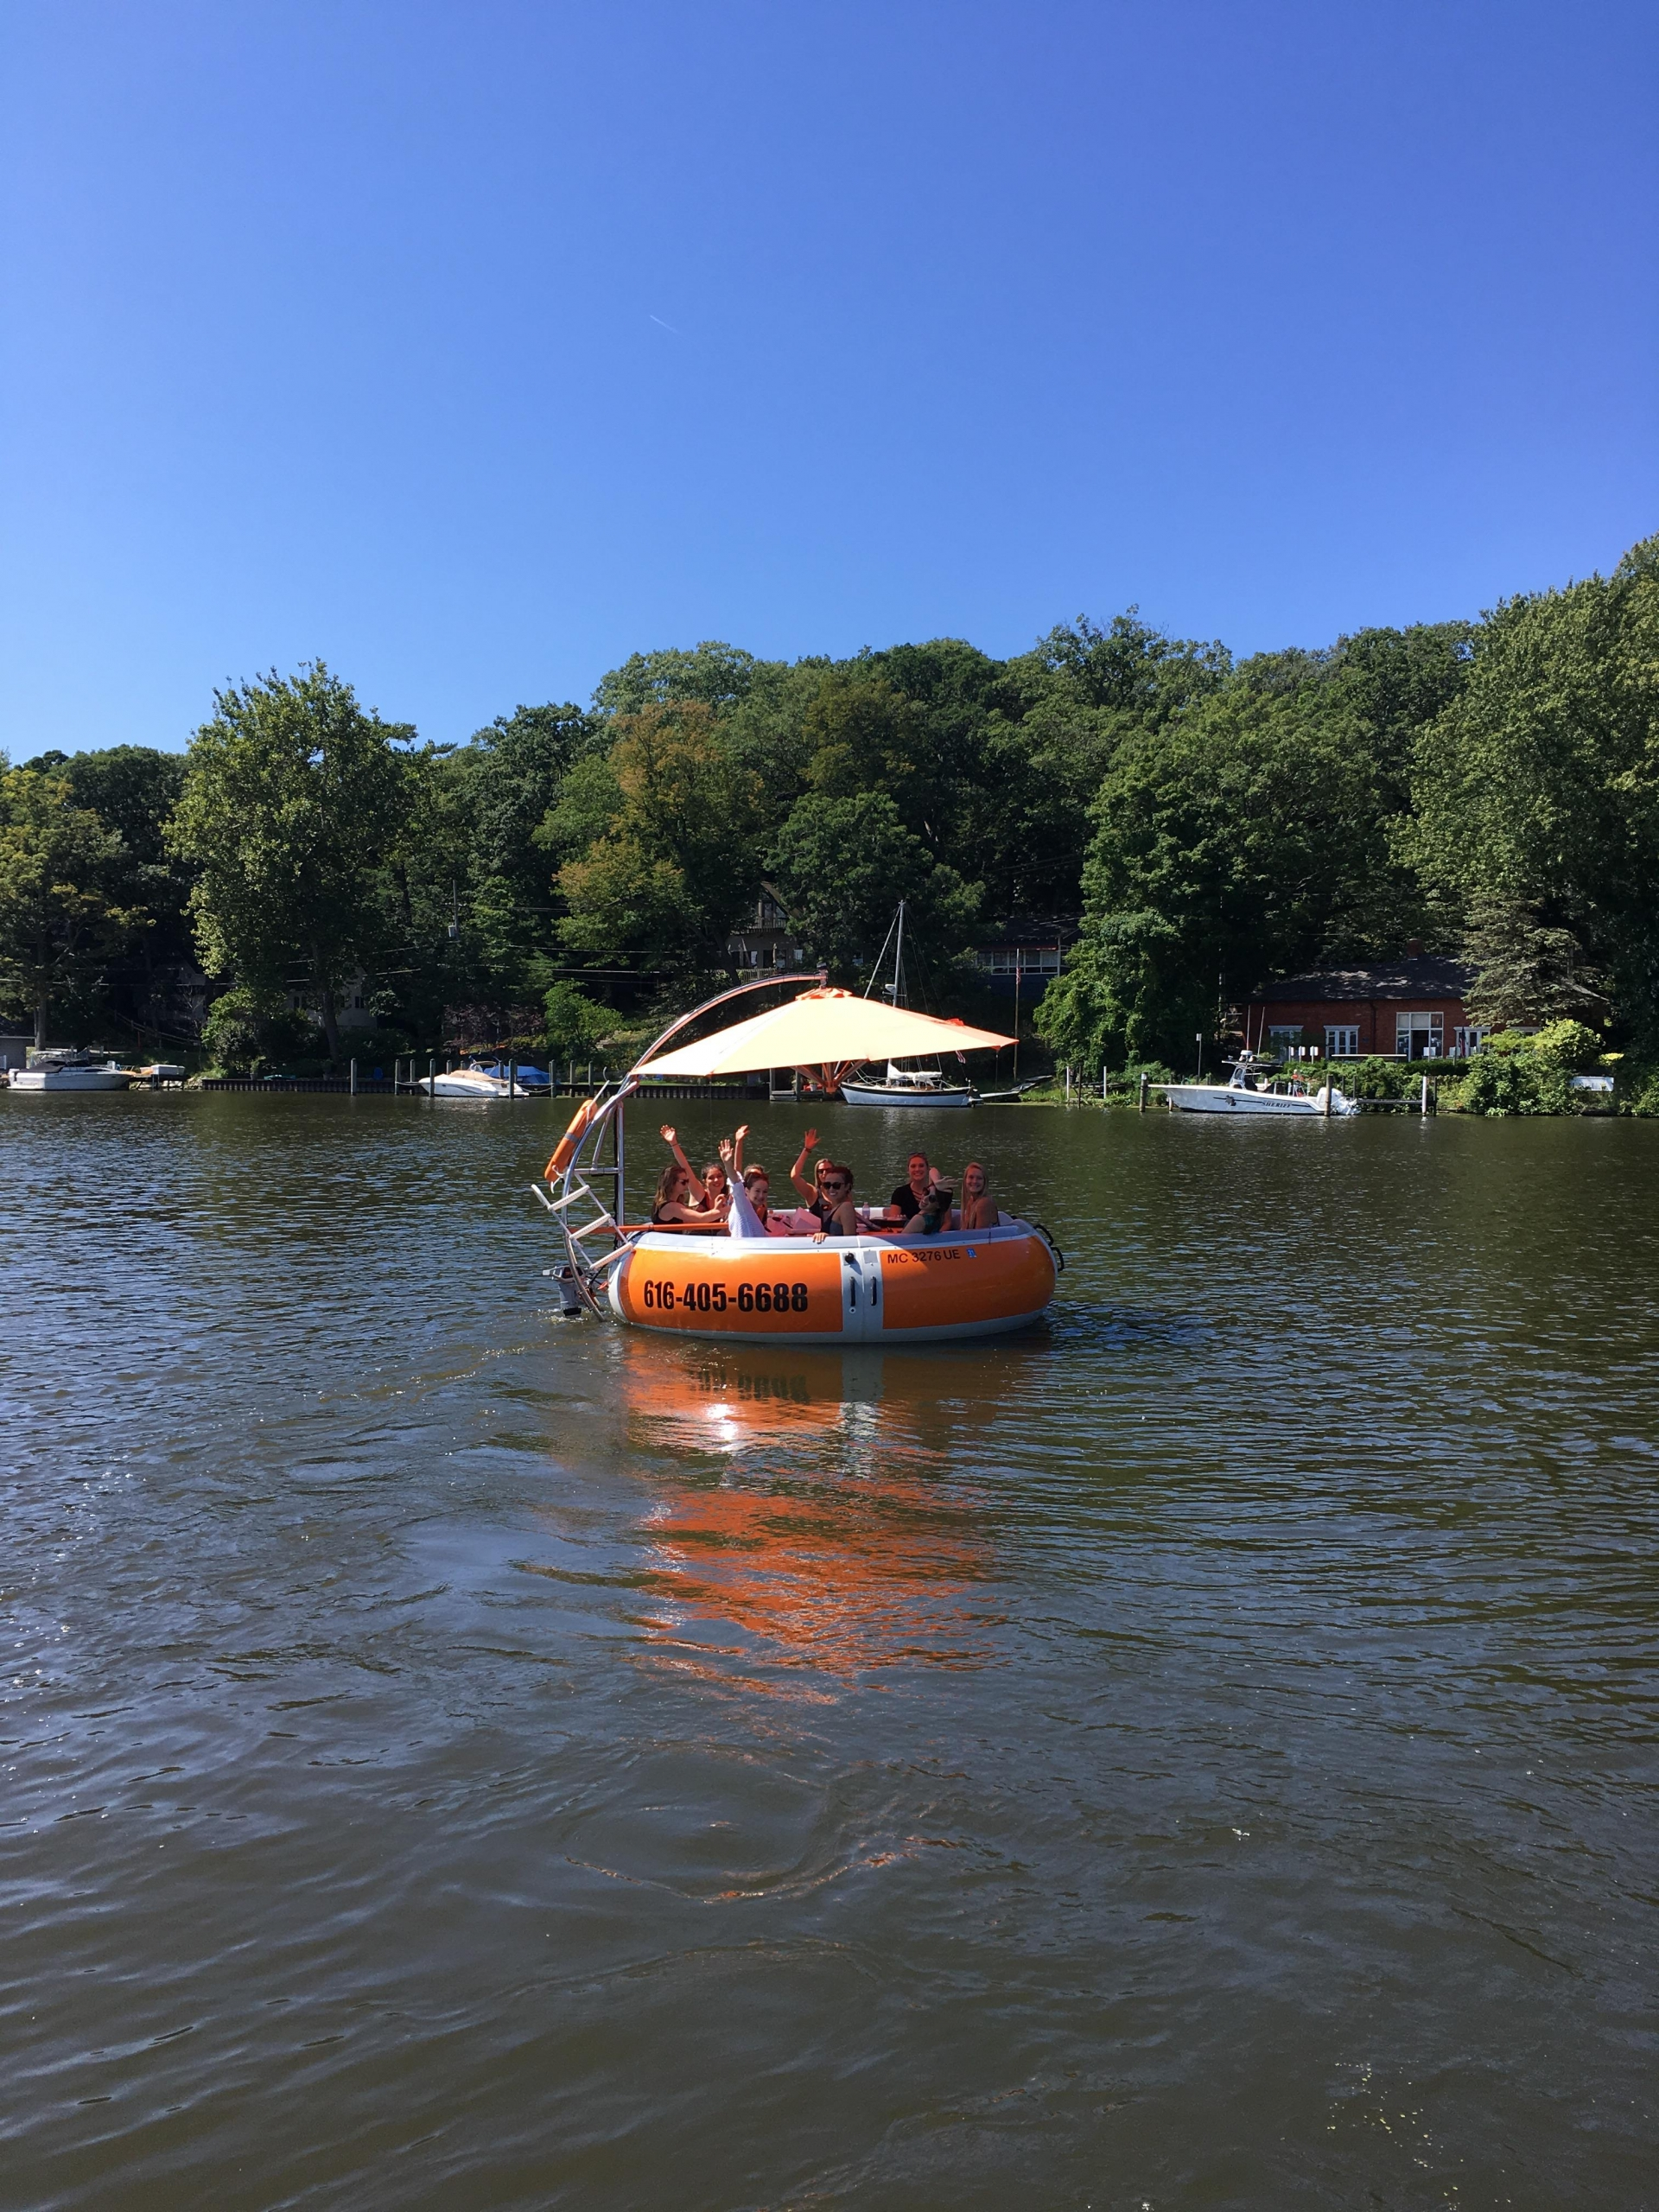 Donut Boats seat up to 10 people and are easy to drive